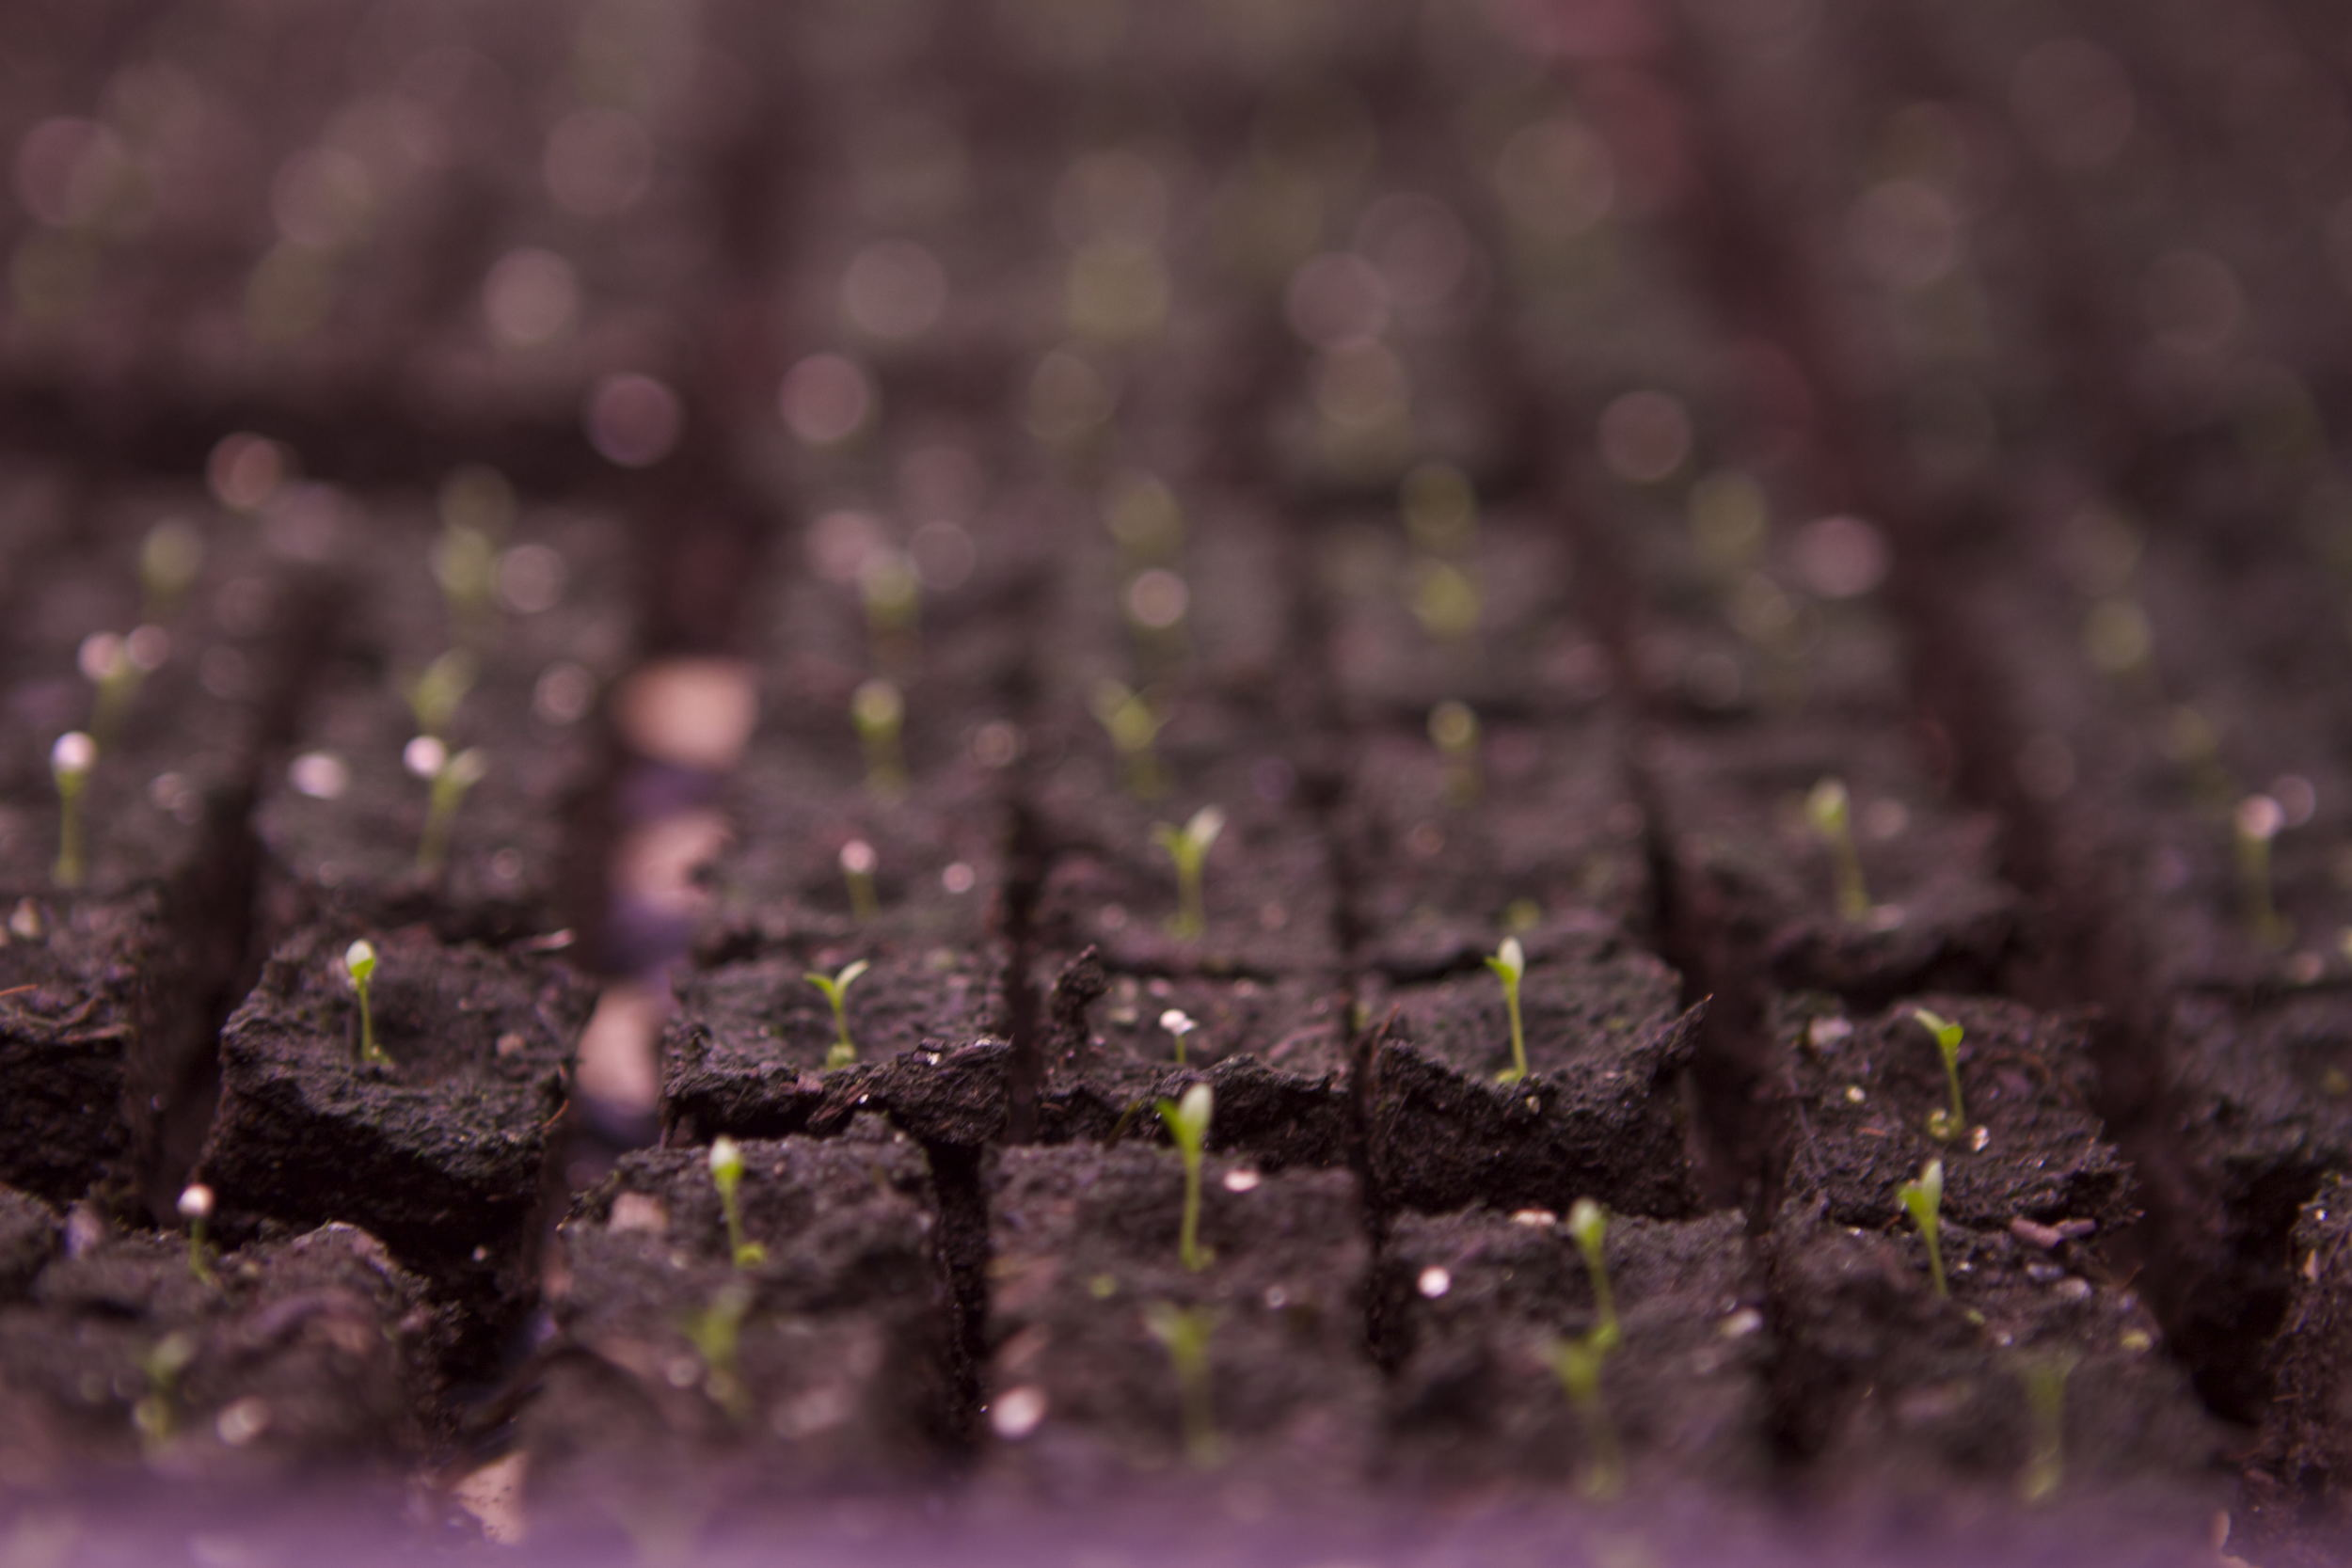 Lisies!!! The tiniest of all the seedlings in all the land!!